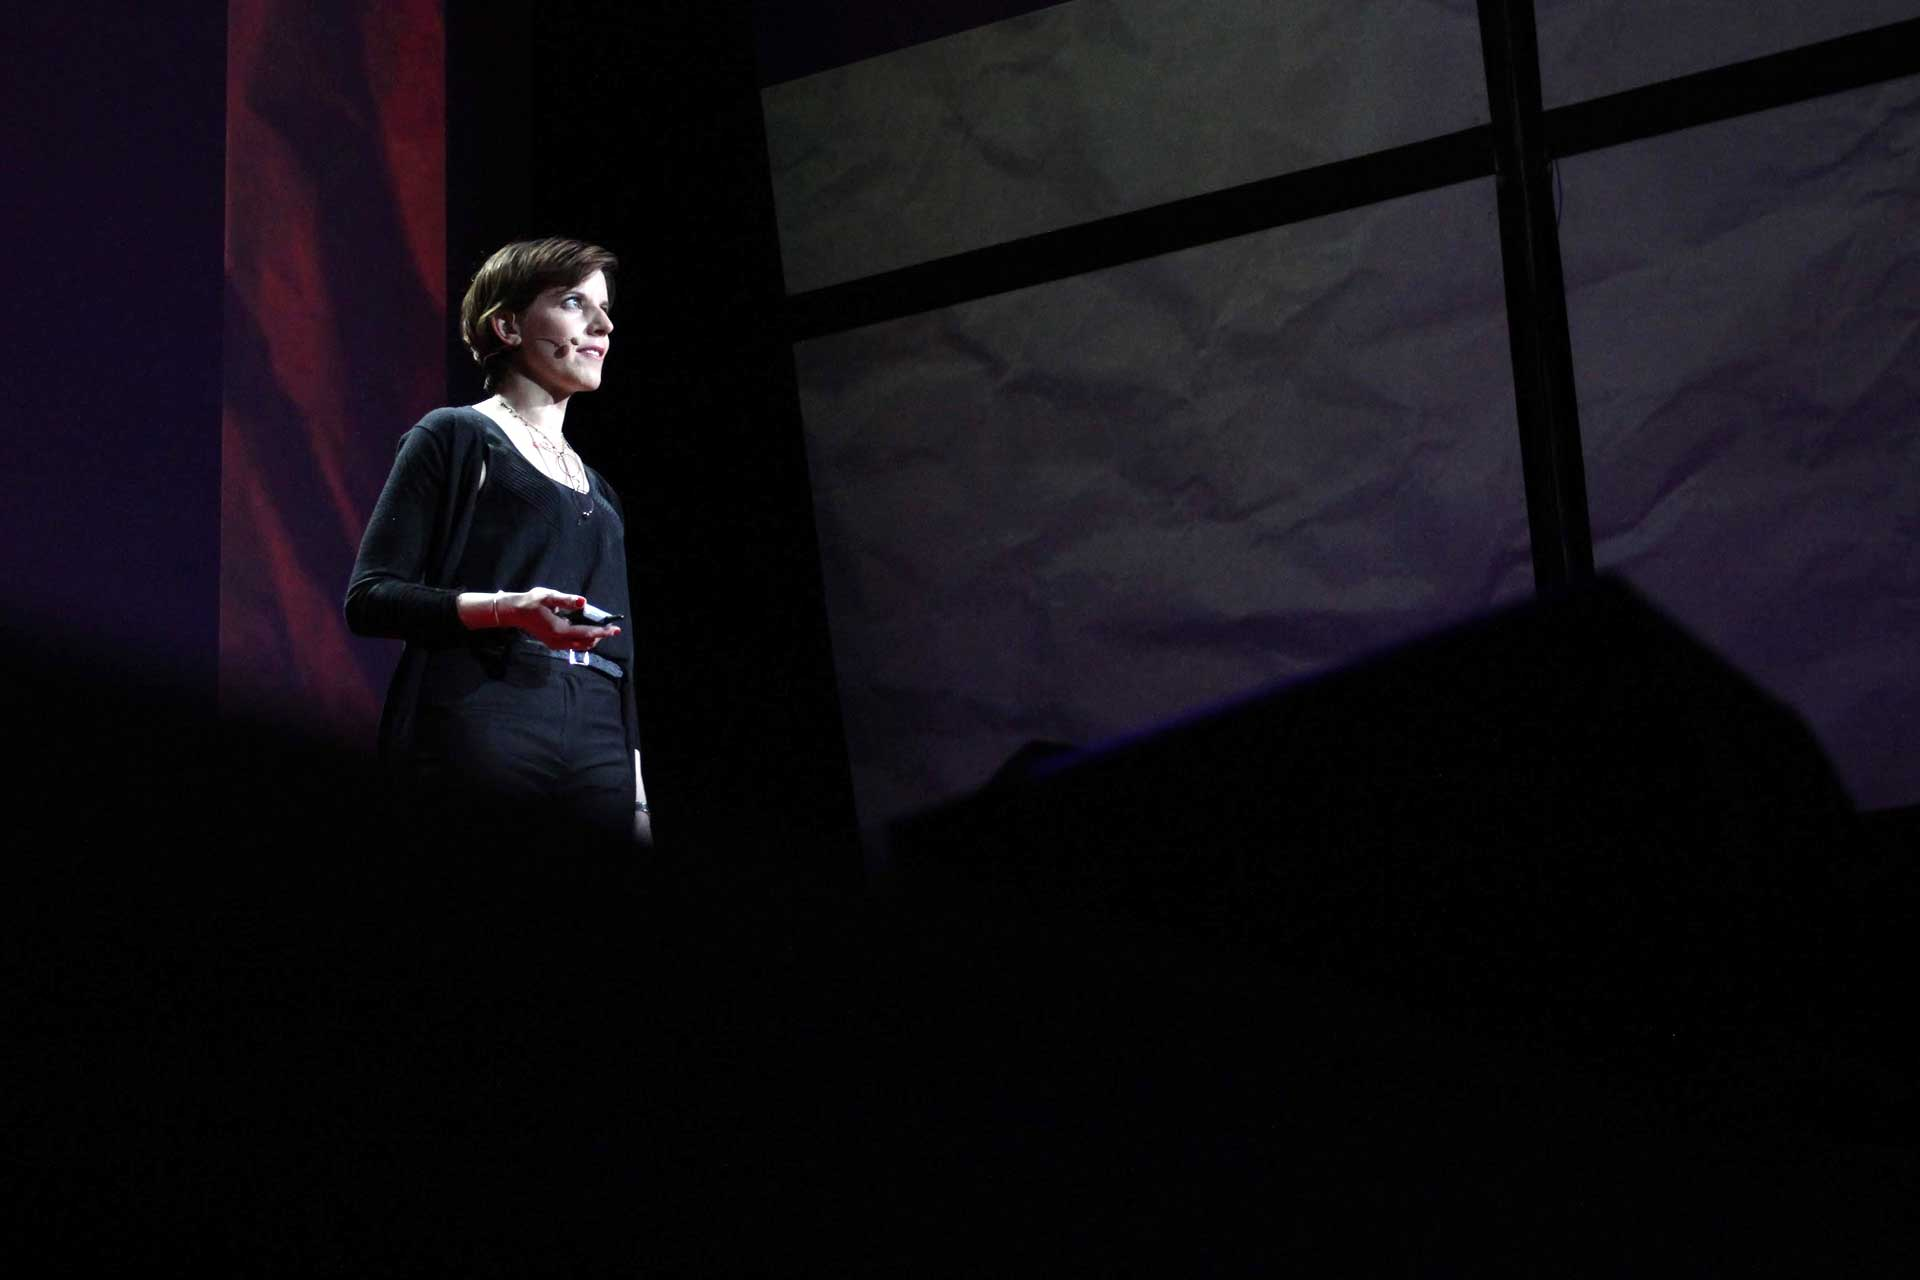 conference-TEDxParis-2013-13.jpg